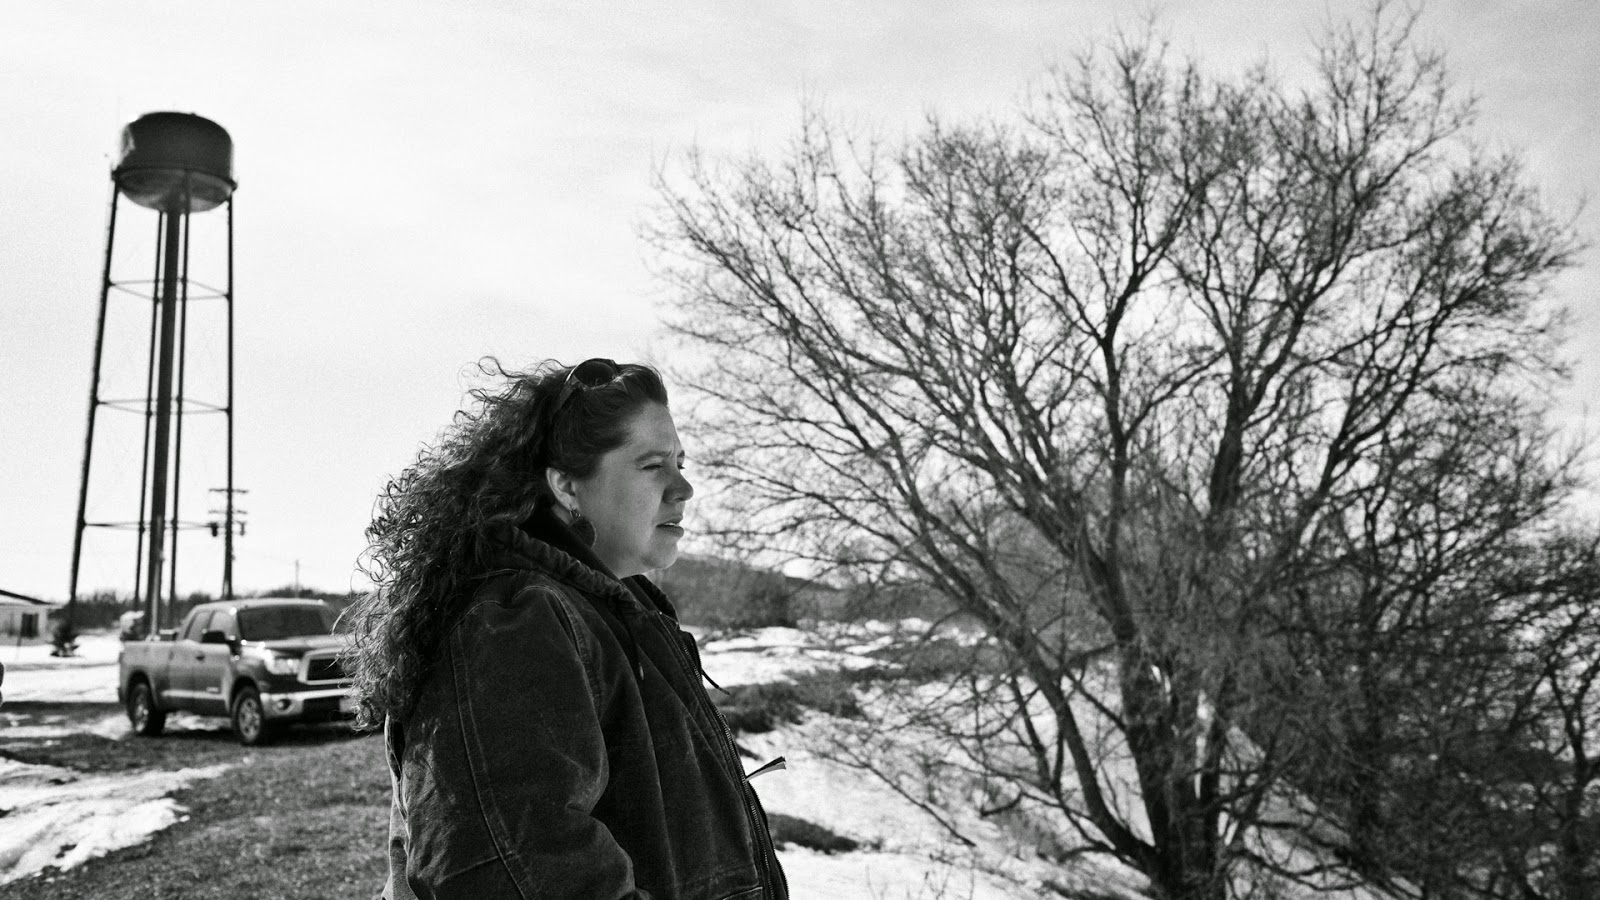 Cristine at Red Lake, outtake from Hearts on the Ground